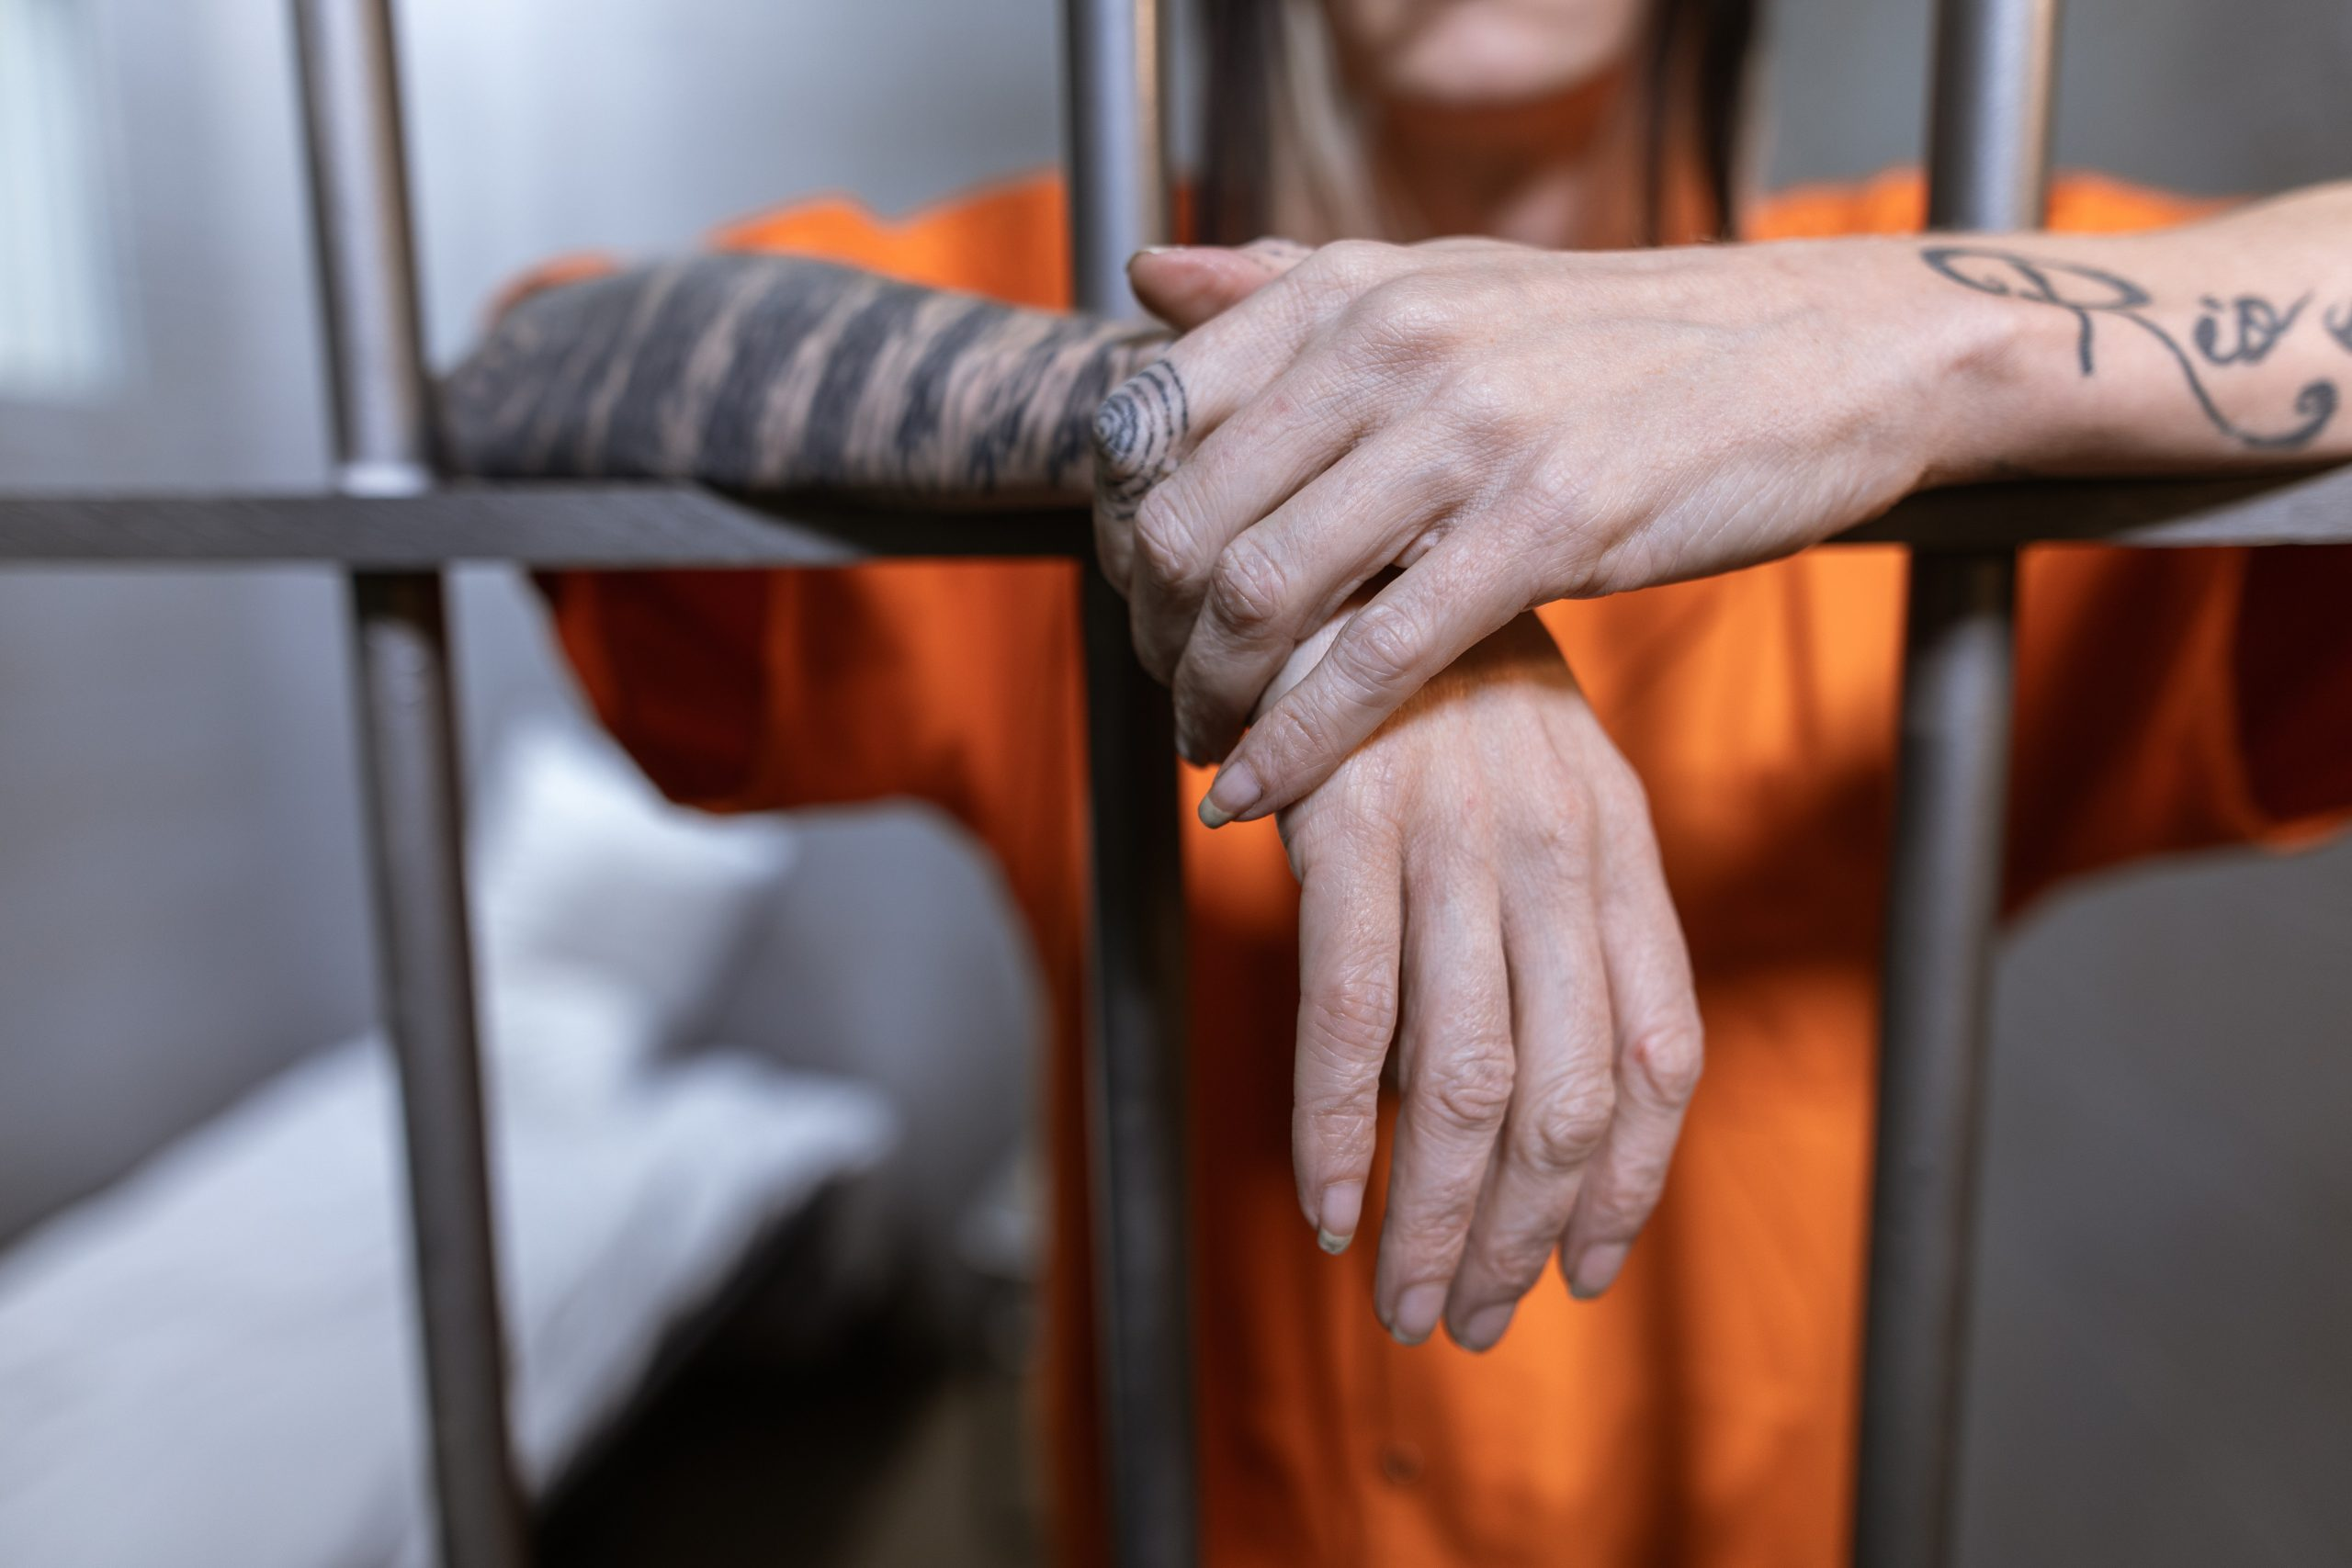 women wearing orange jumpsuit with her hands resting on jail cell bars